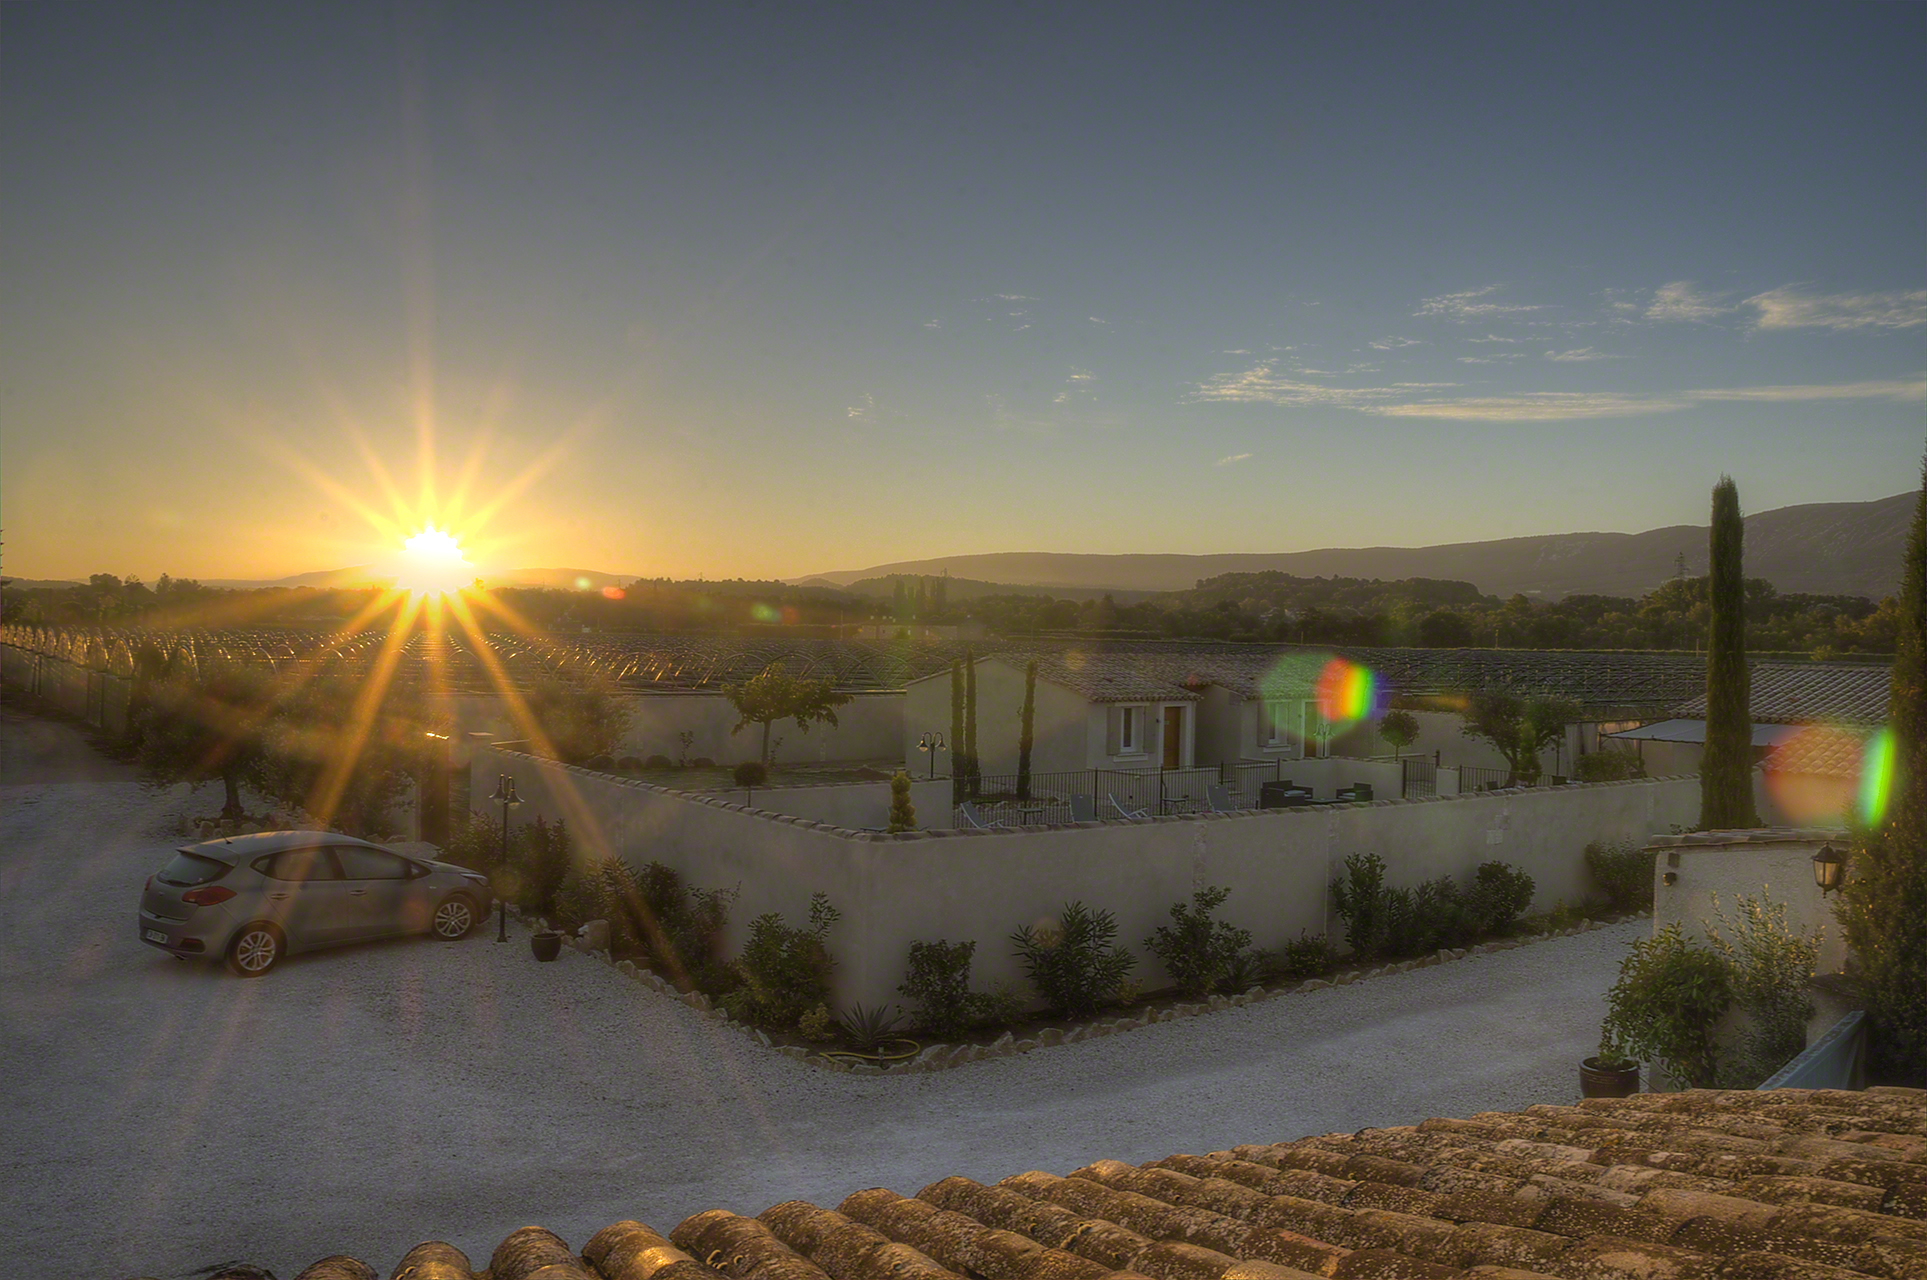 sunrise in Provence